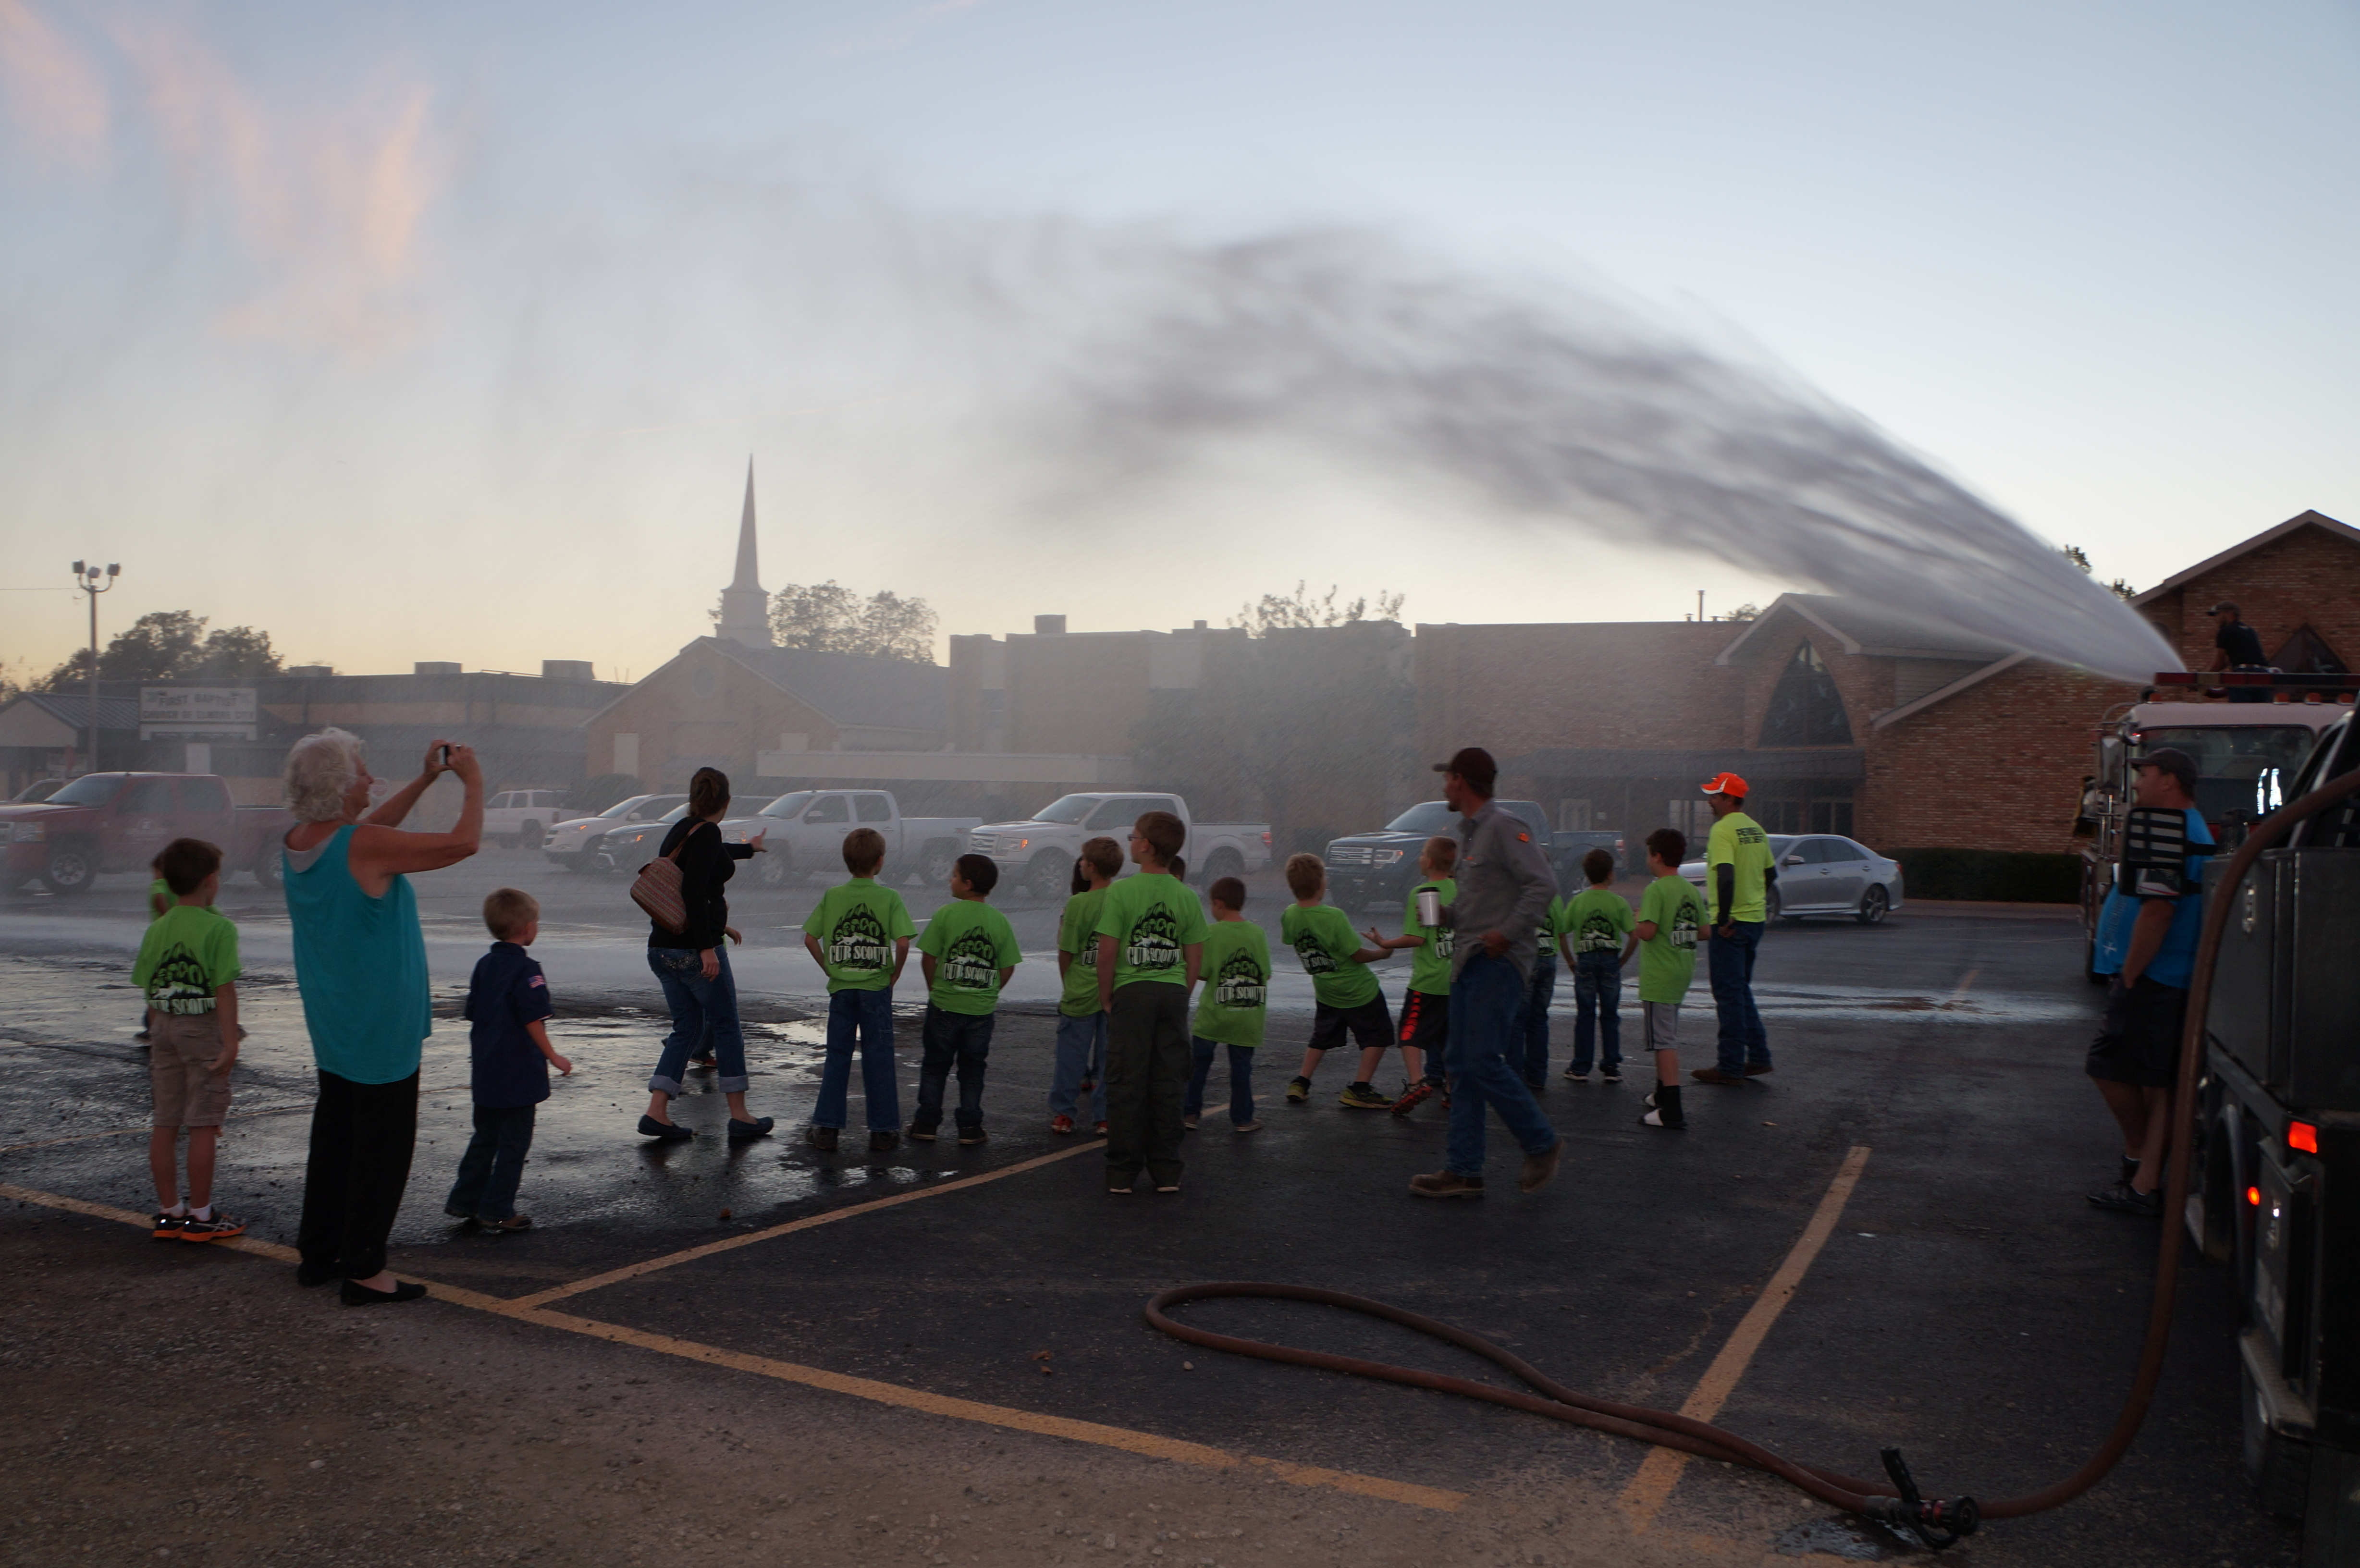 Cub Scout Pack 71 From Elmore OK Has Fun With The Local Fire Department In Their ClassB T-shirts